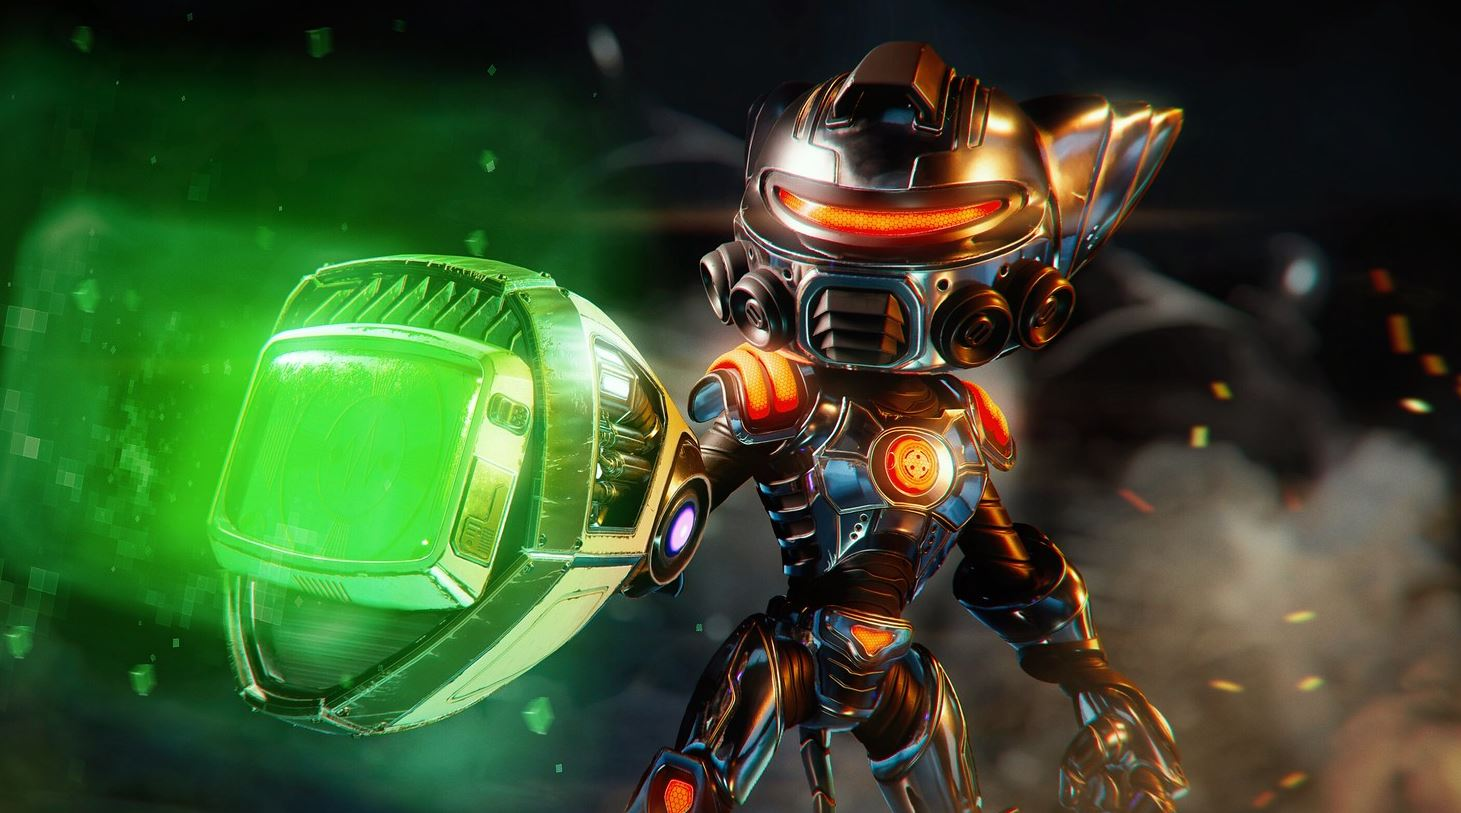 ratchet-and-clank-digital-deluxe-edition-and-pre-order-bonuses-detailed-box-art-also-revealed